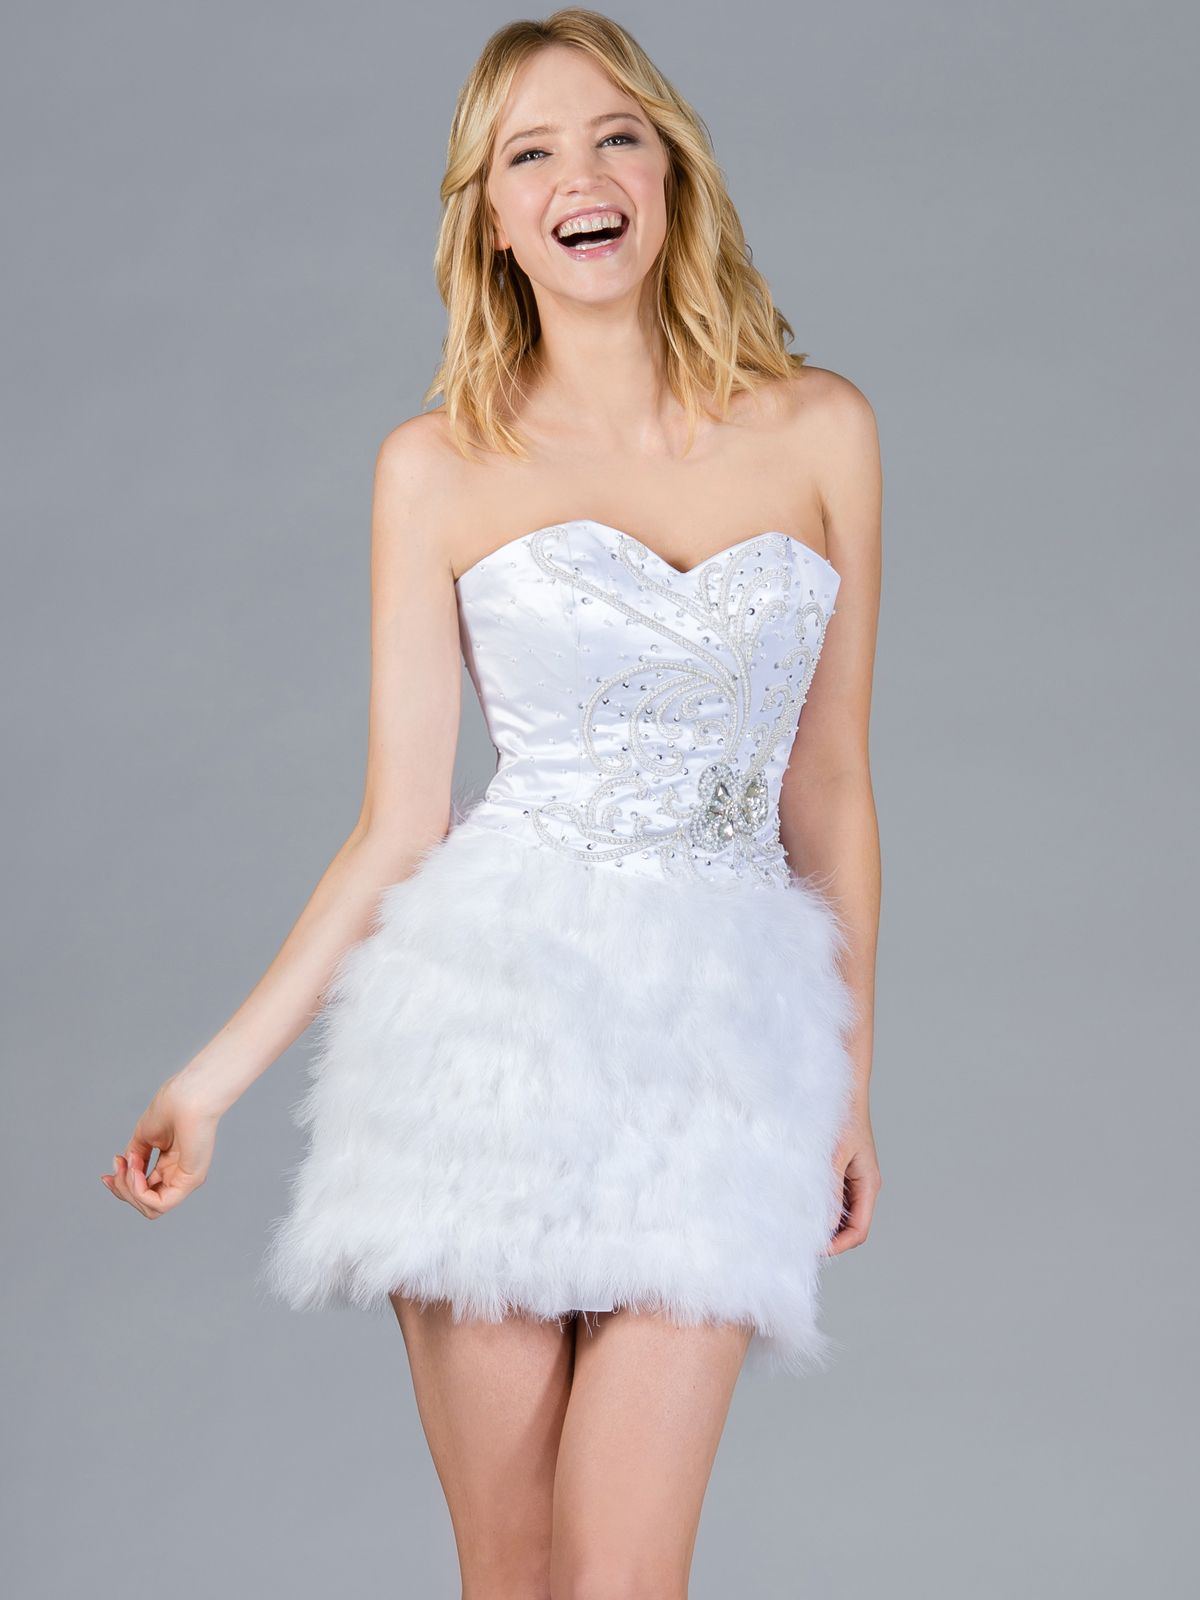 10 Best images about White Cocktail Dress on Pinterest - Confusion ...